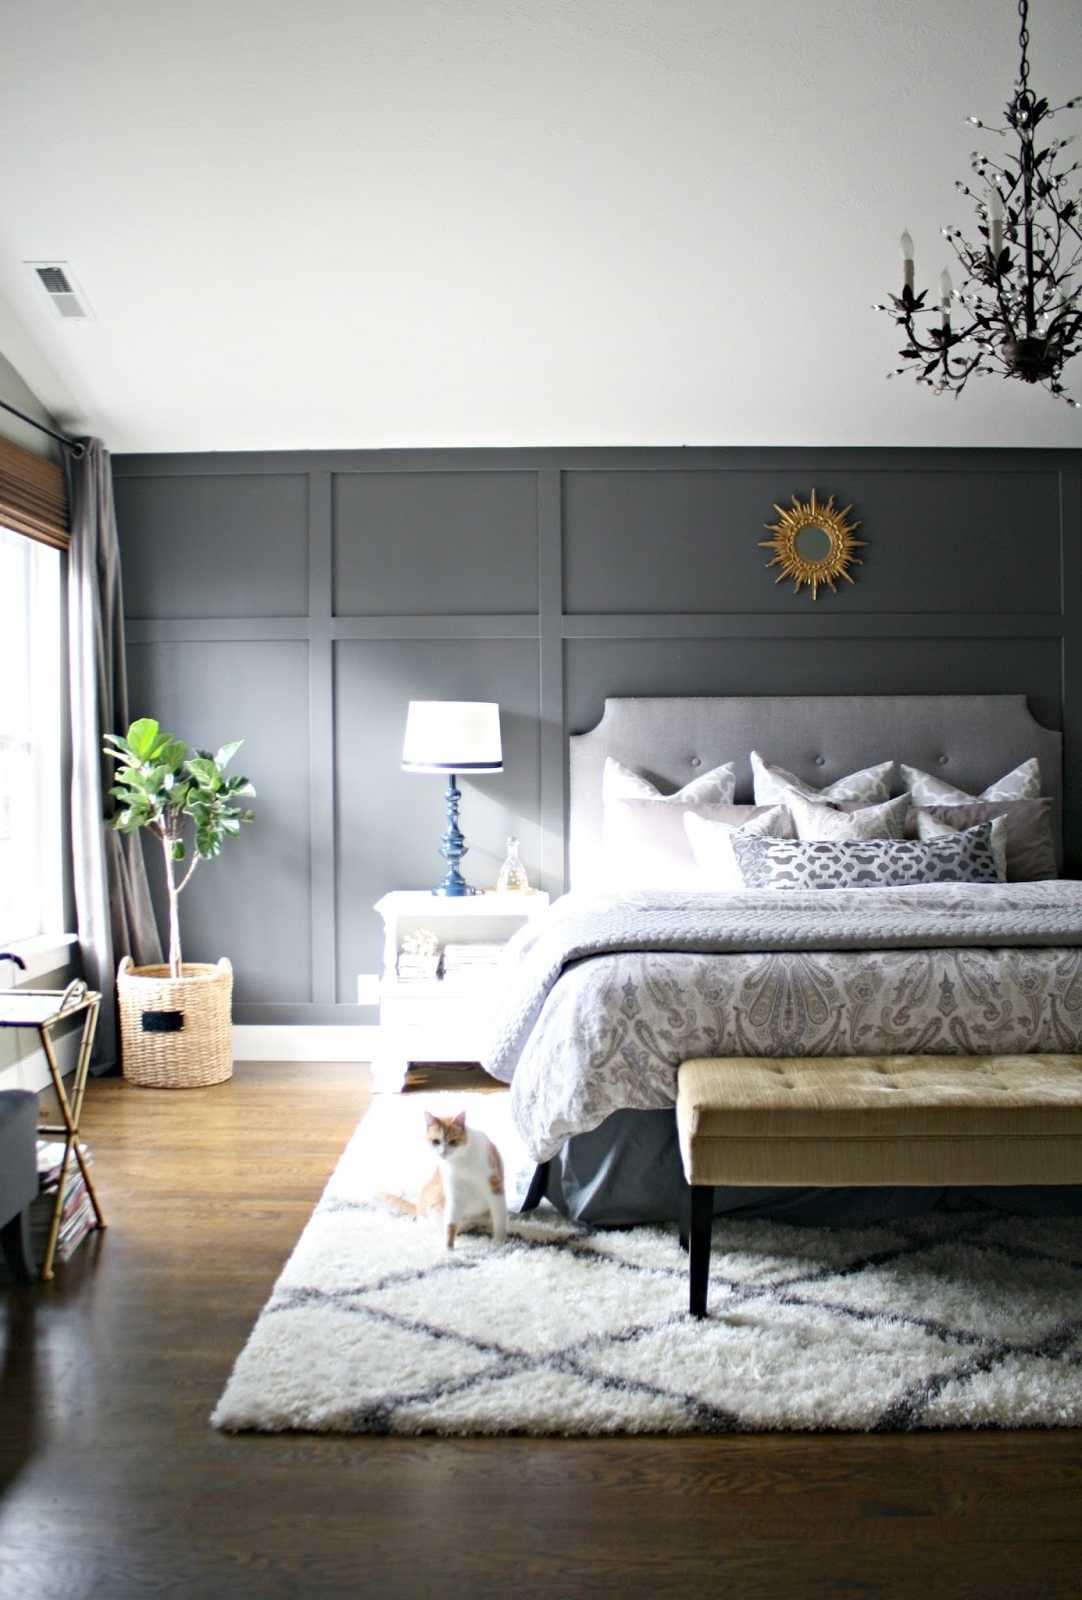 Top 15 of wallpaper living room wall accents - Accent wall in small bedroom ...